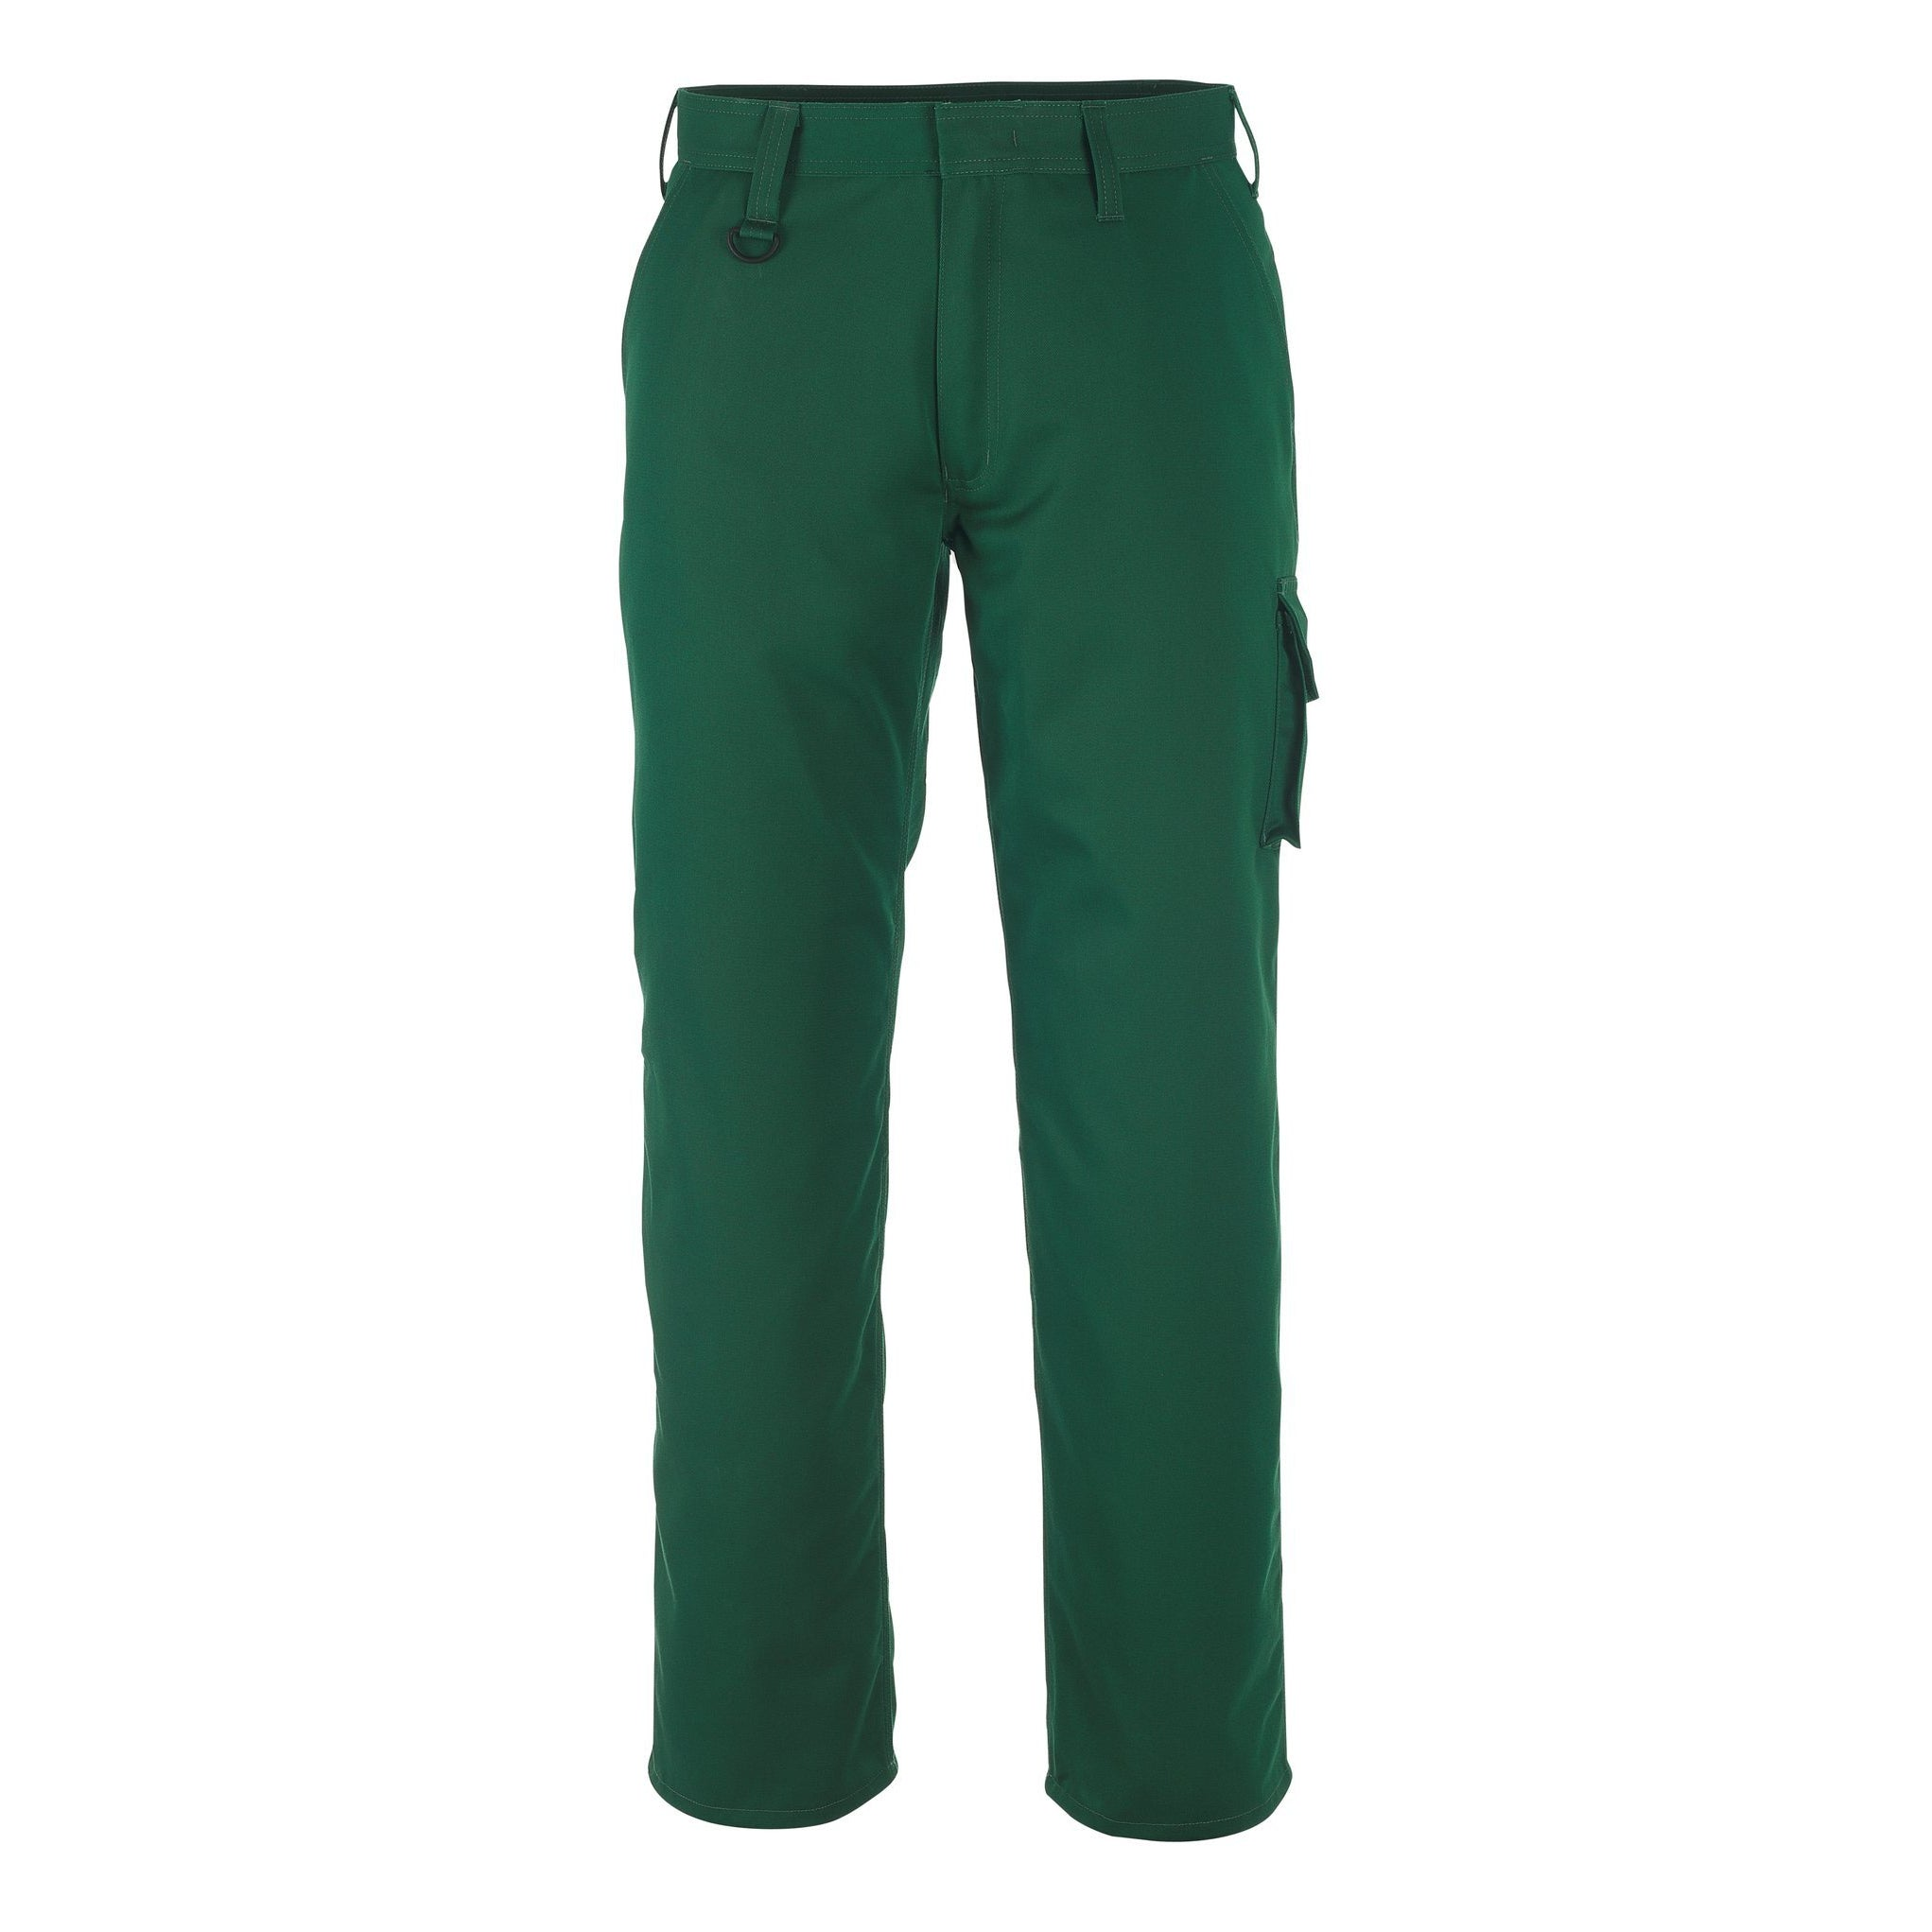 Mascot Berkeley Industry Trousers With Thigh Pockets